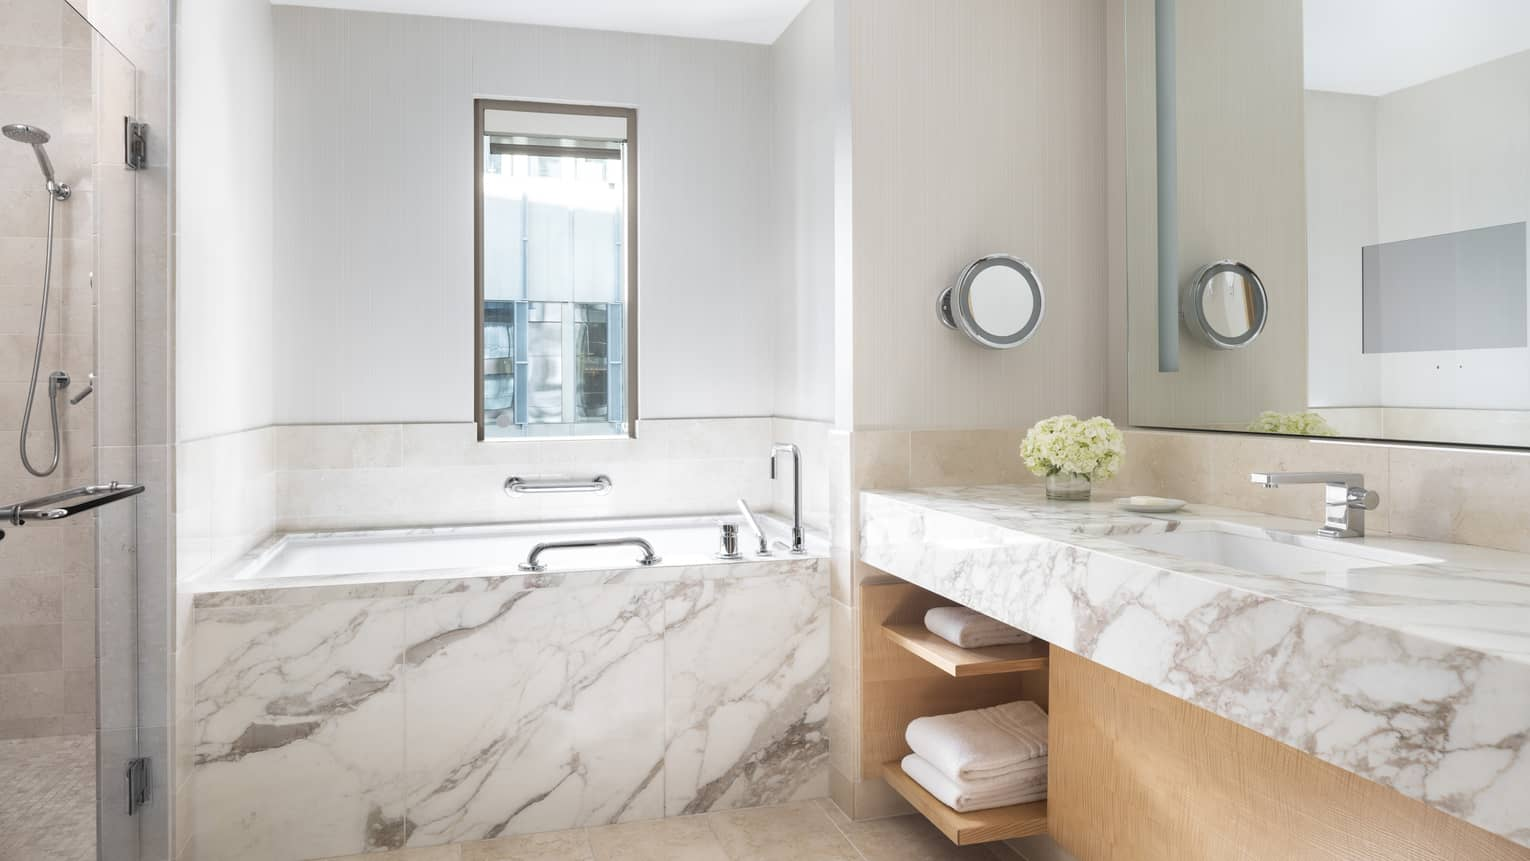 Marble counter and a marble bathtub gleam in a bathroom